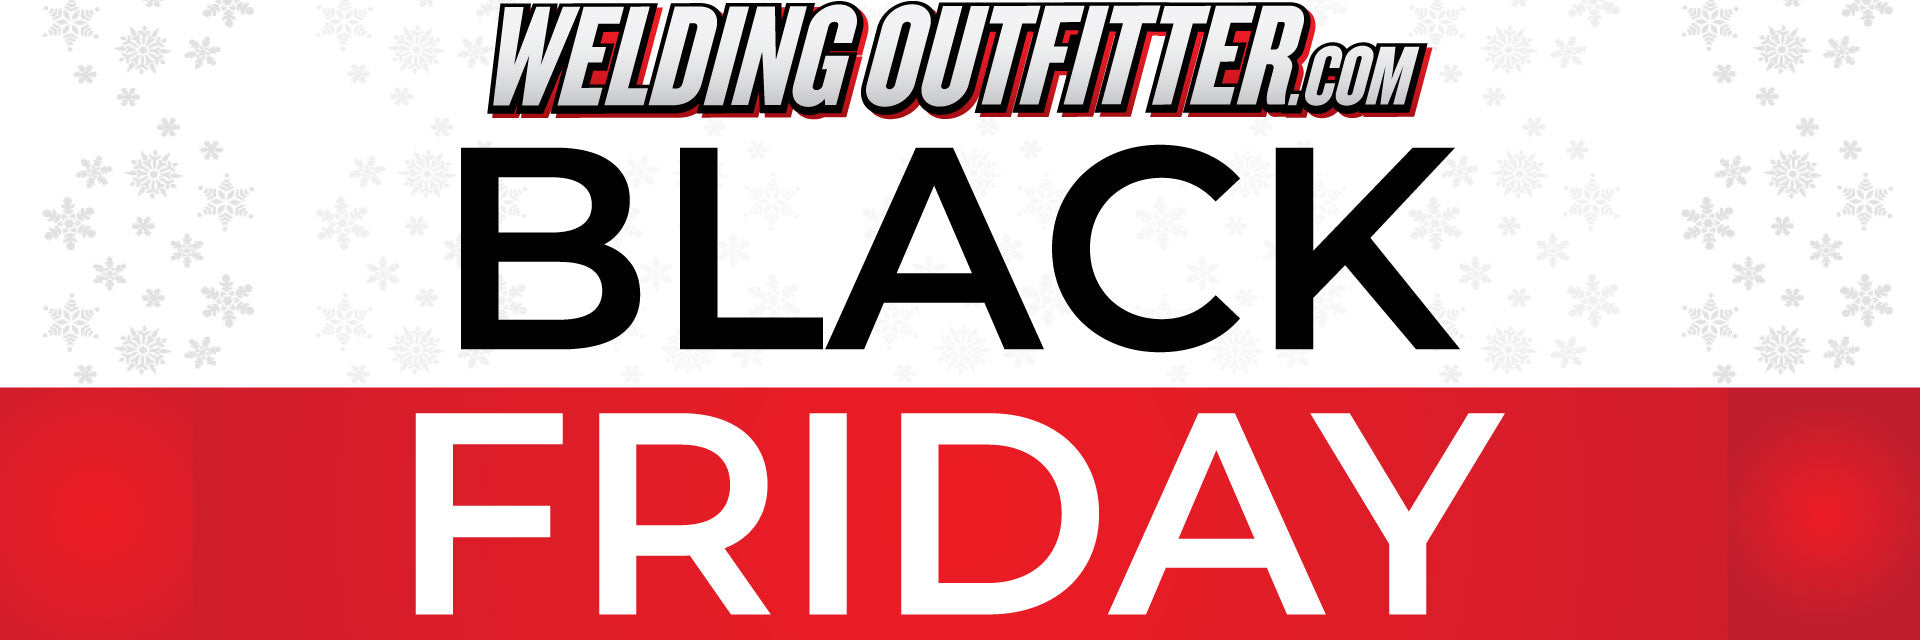 Sensational Black Friday 2019 Welding Outfitter Weldingoutfitter Com Gmtry Best Dining Table And Chair Ideas Images Gmtryco